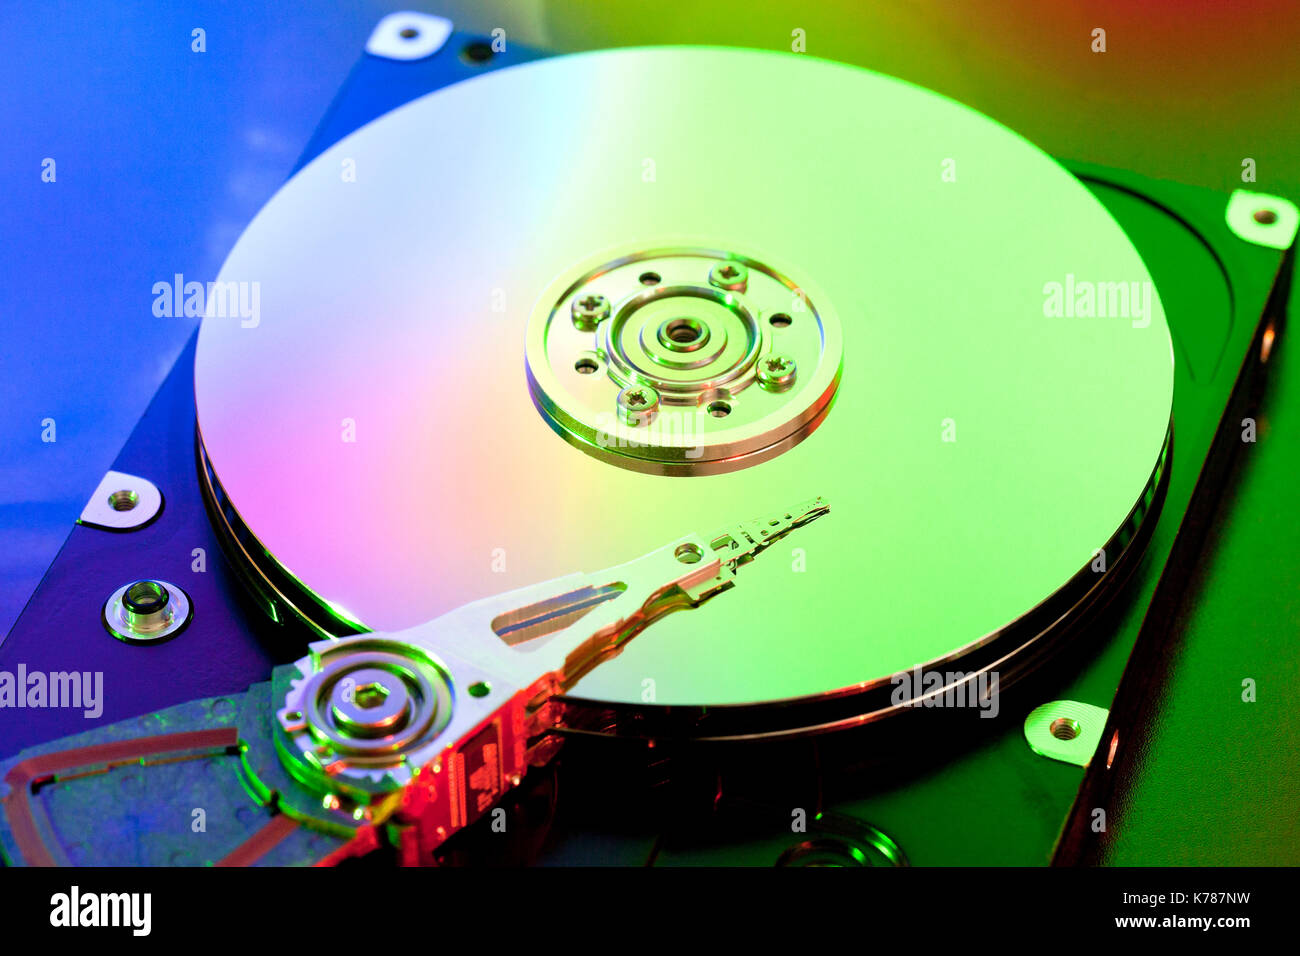 Hard disk drive platter and read / write head (HDD read/write head, Hard Drive) - Stock Image